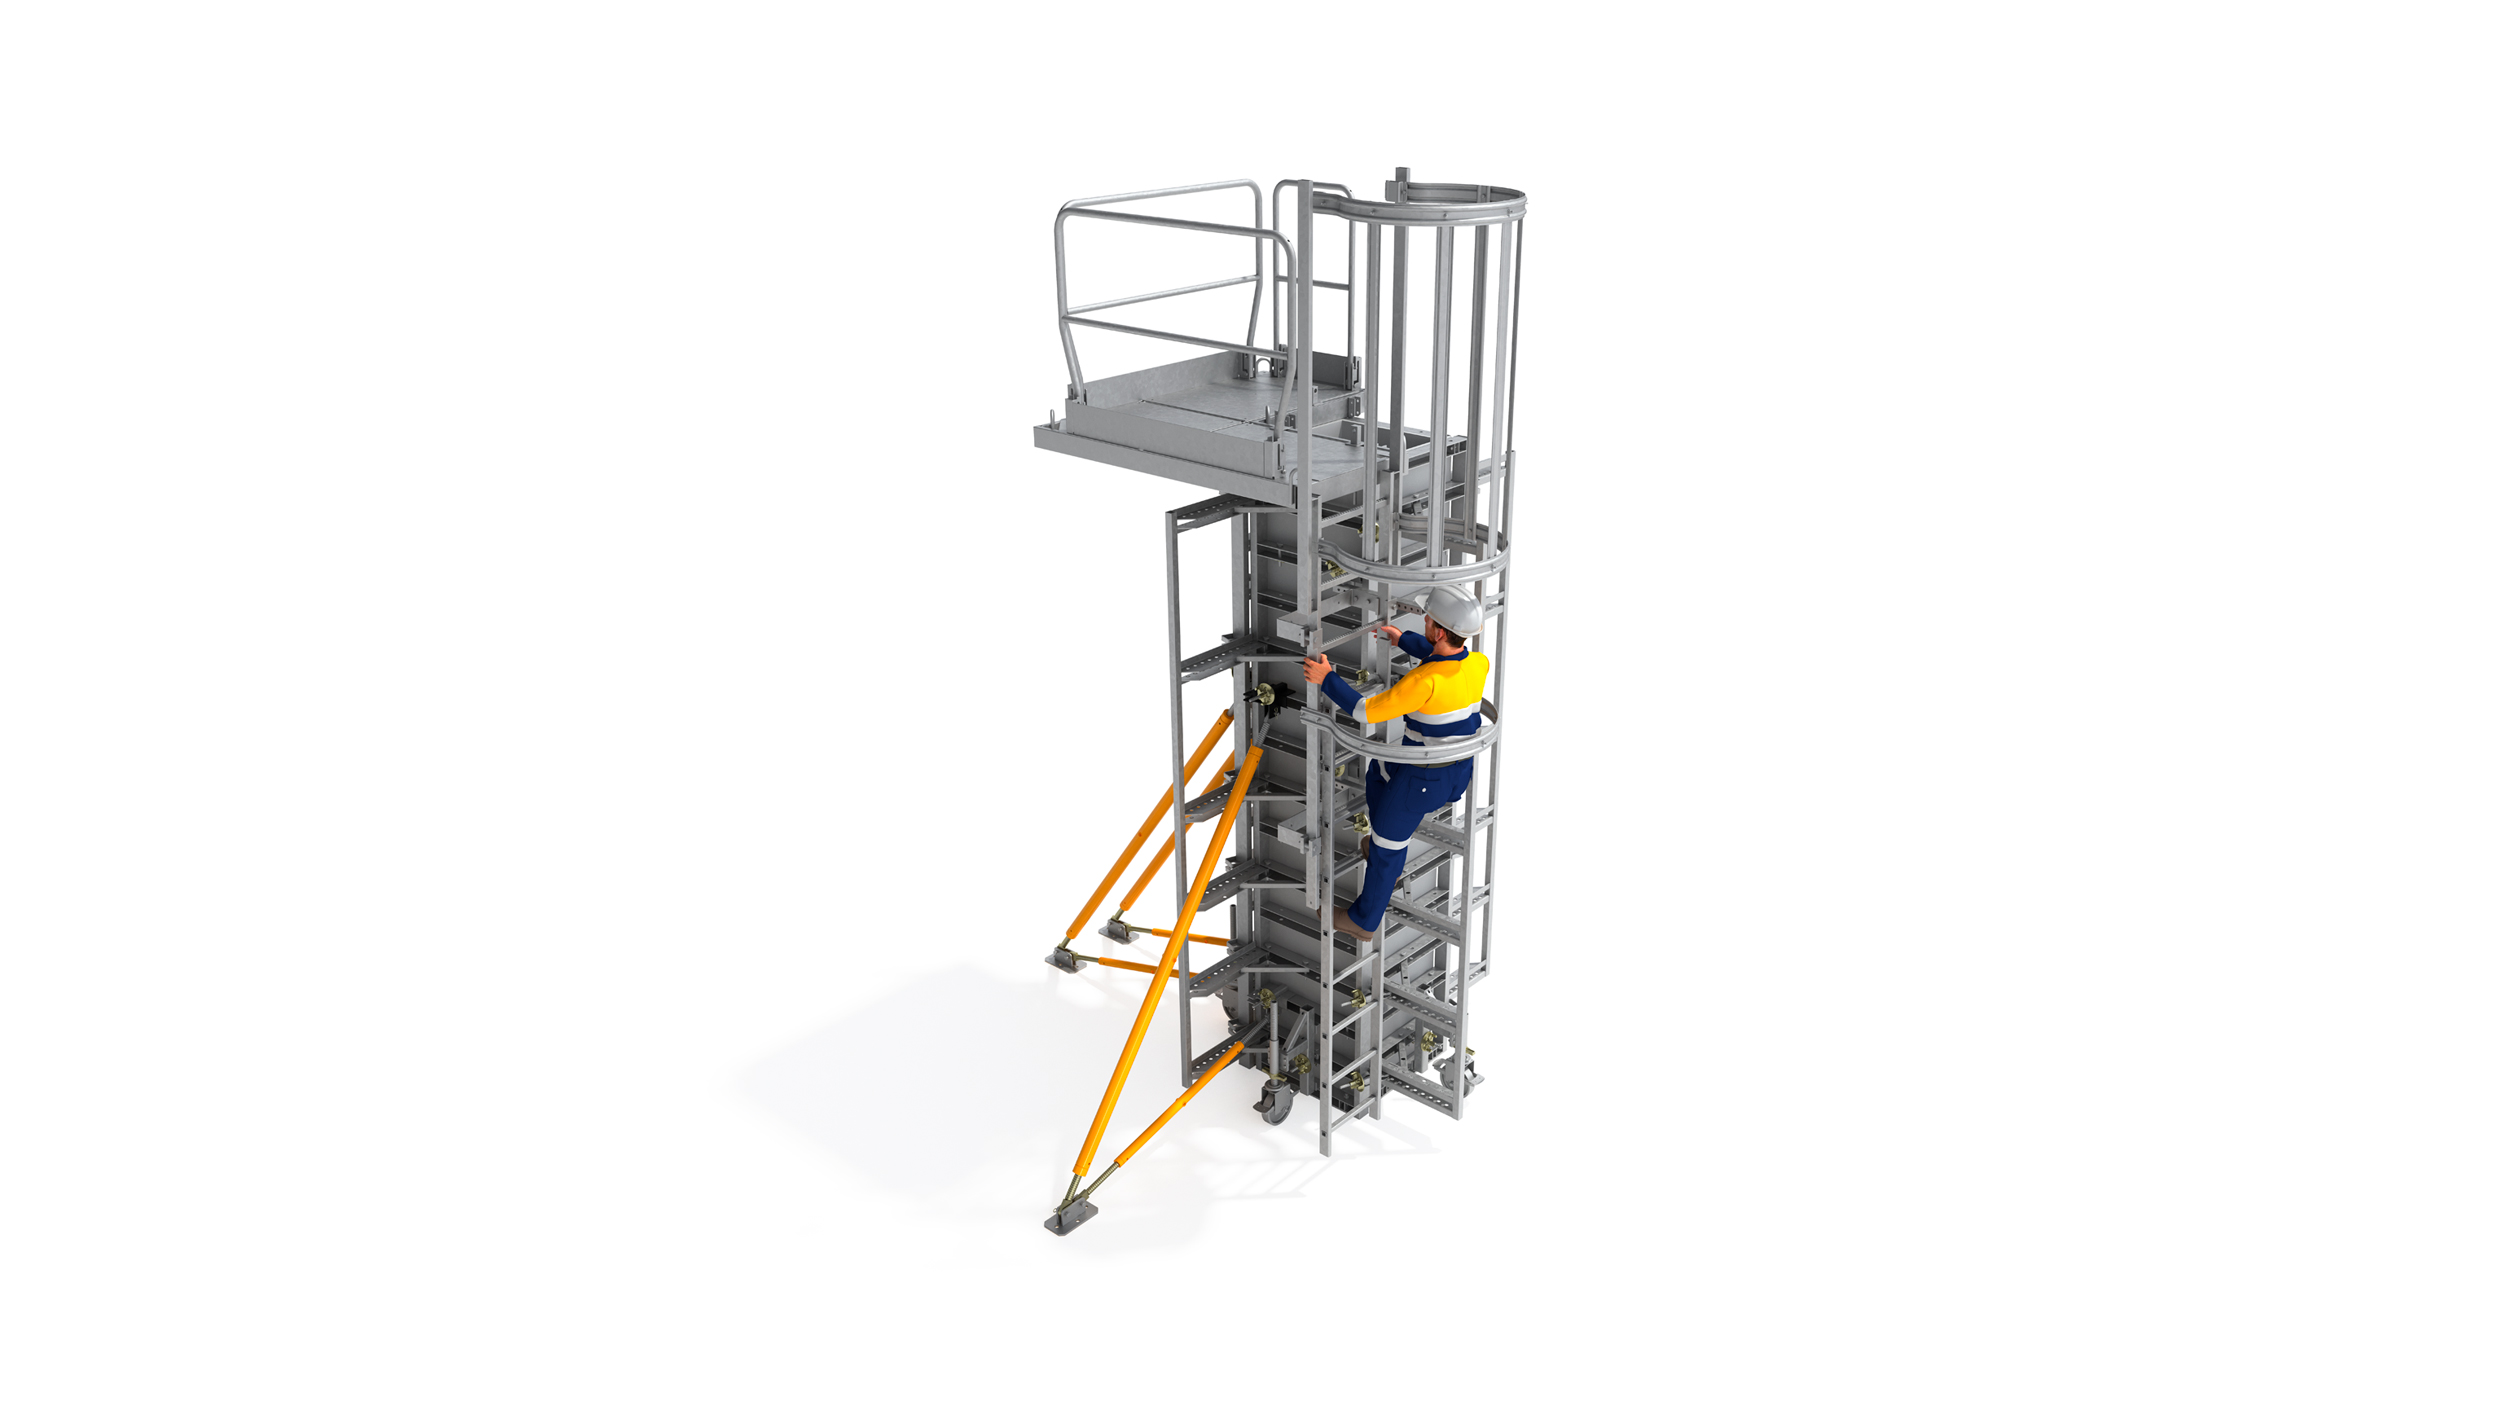 Cost-efficient safety system specially designed for column concreting tasks. Highlights: built-in safety and lifting elements. Easy to erect and dismantle.